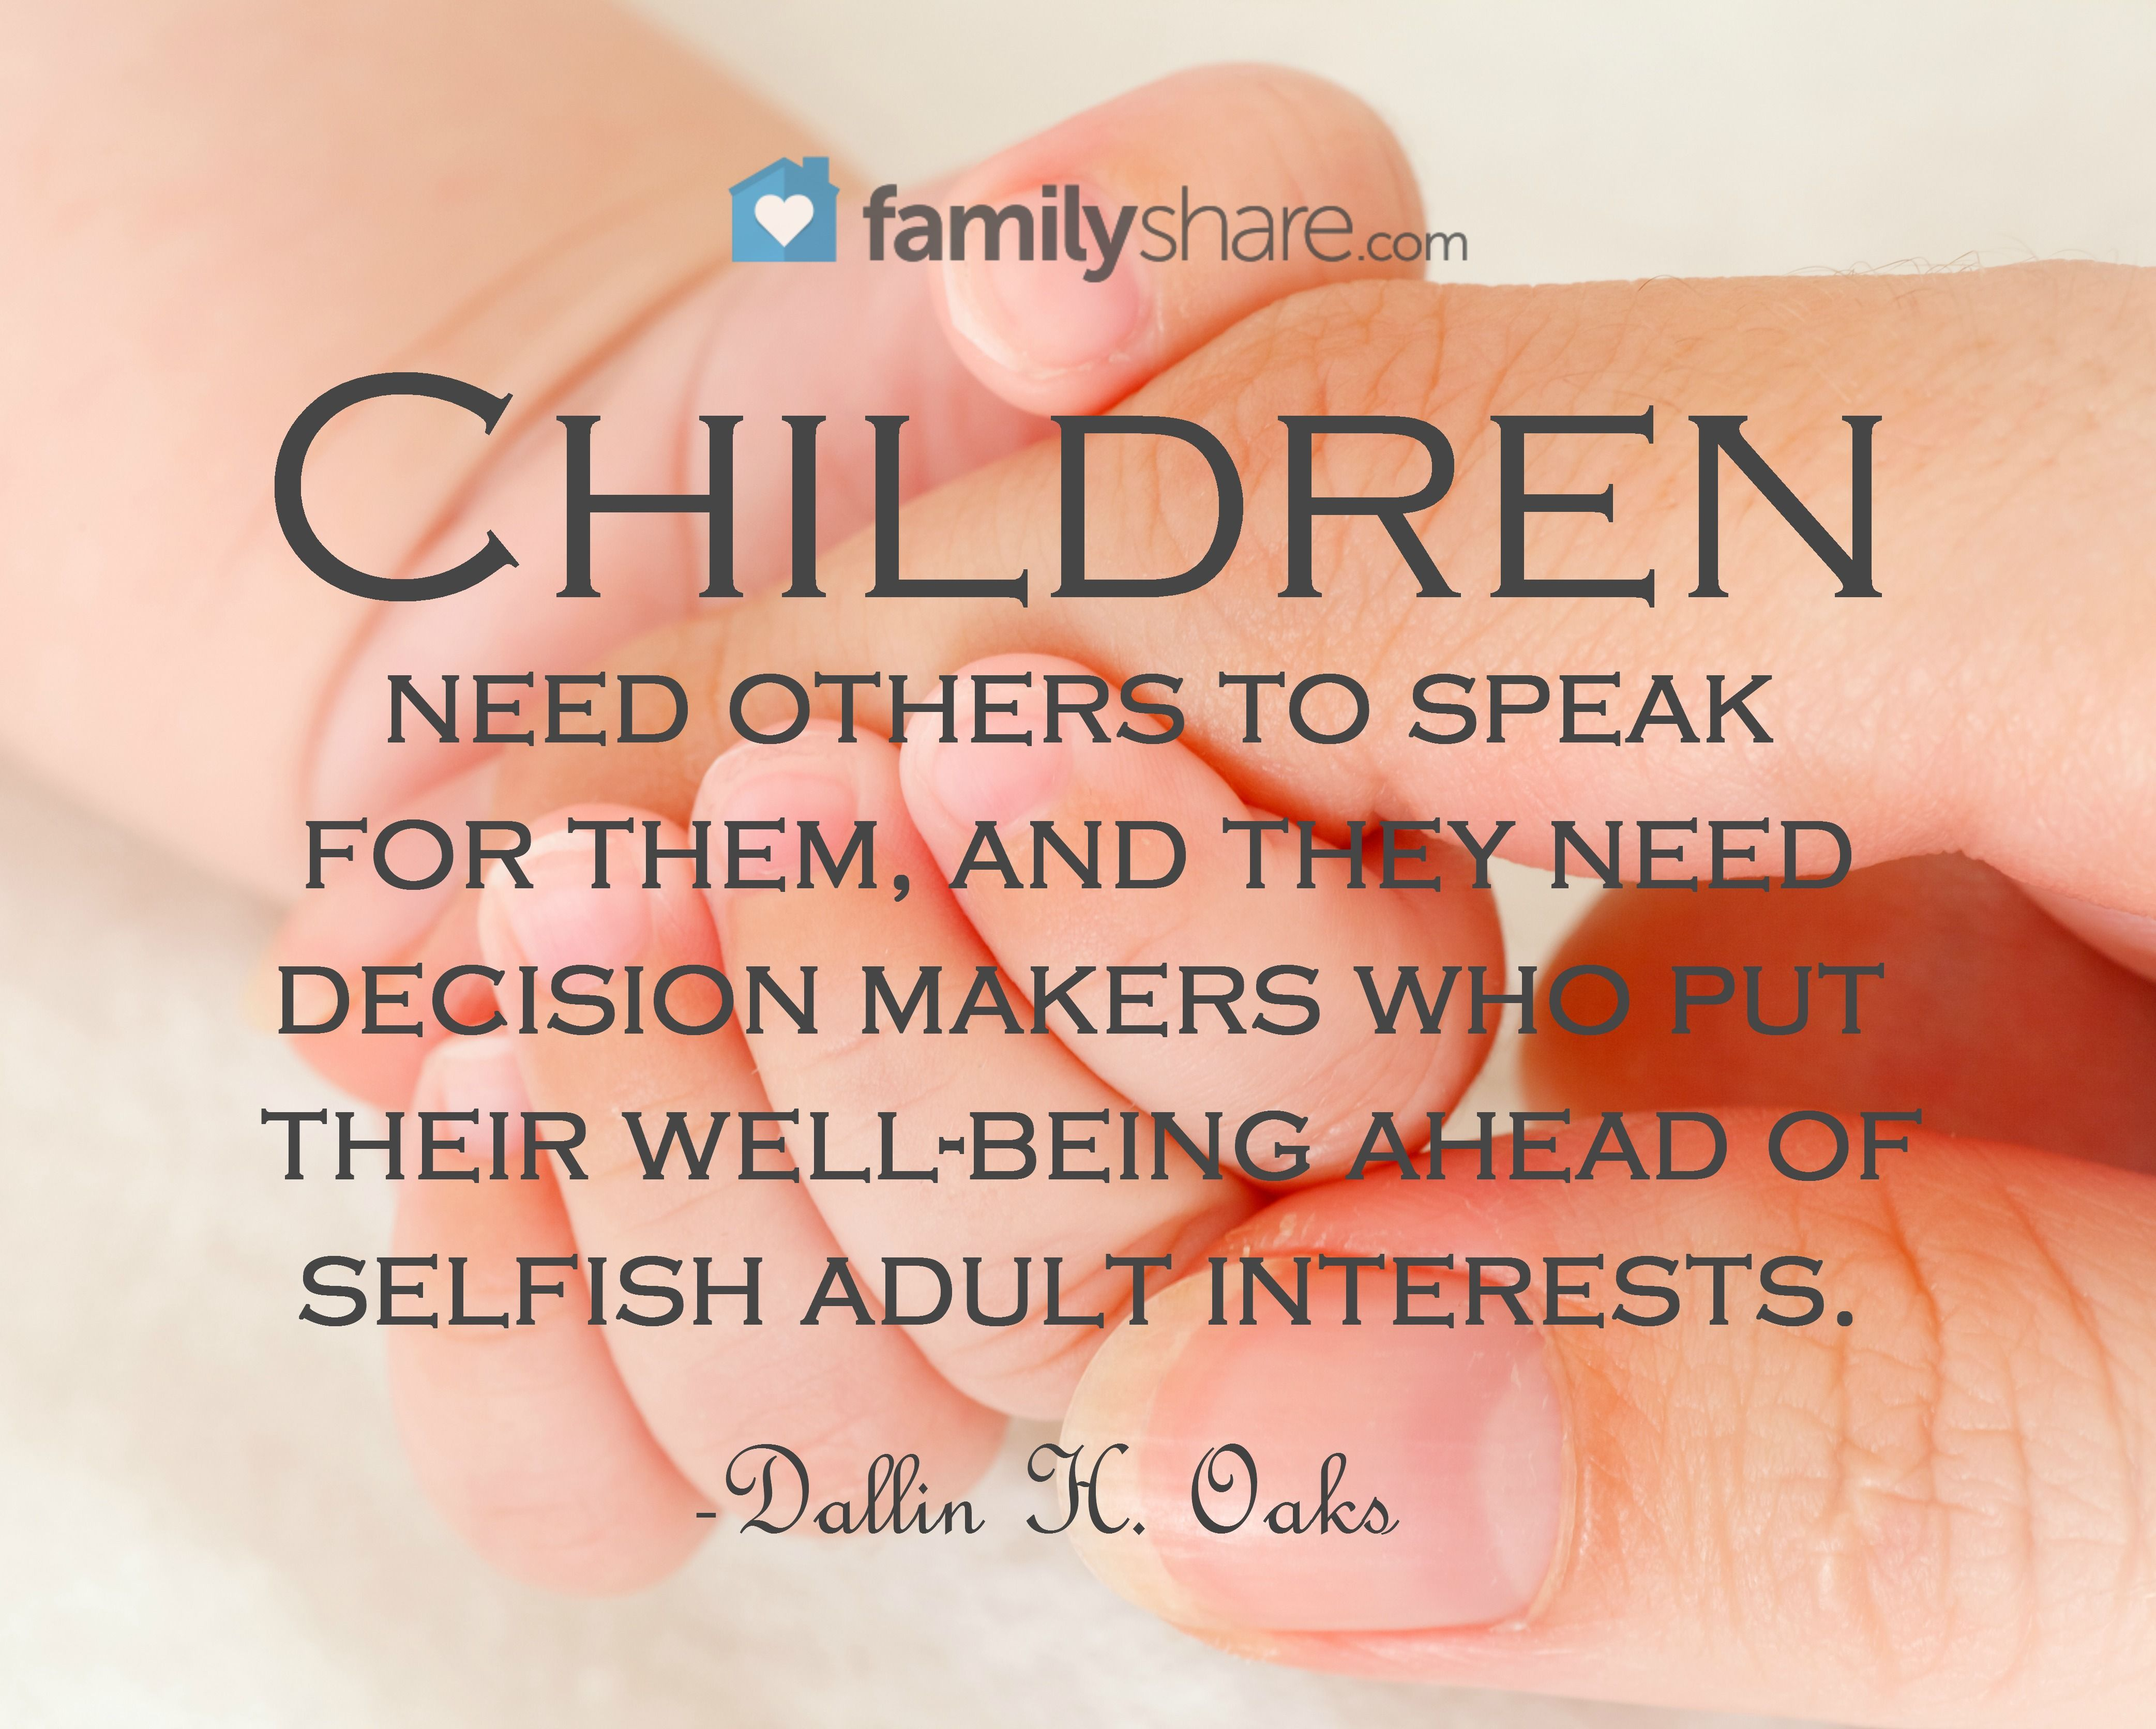 Children need others to speak for them, and they need decision makers who put their well-being ahead of selfish adult interests. -Dallin H. Oaks.